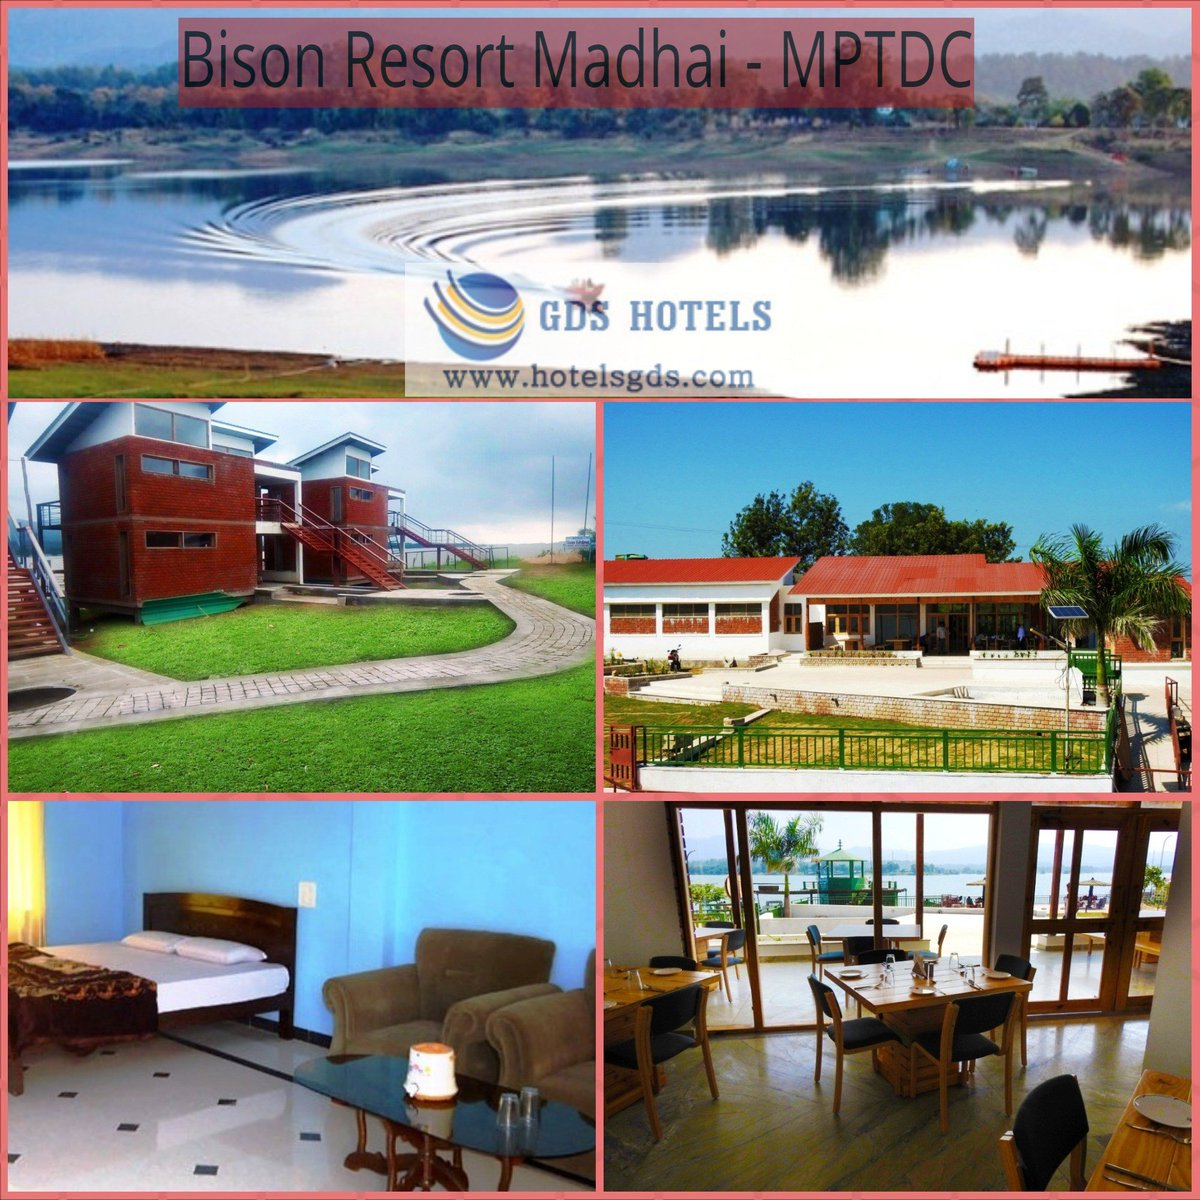 Bisonresort Madhai Mptdc Is Budgethotel In With Best Cl Accommodation Conference Facility Contact For Special Tariffpic Twitter